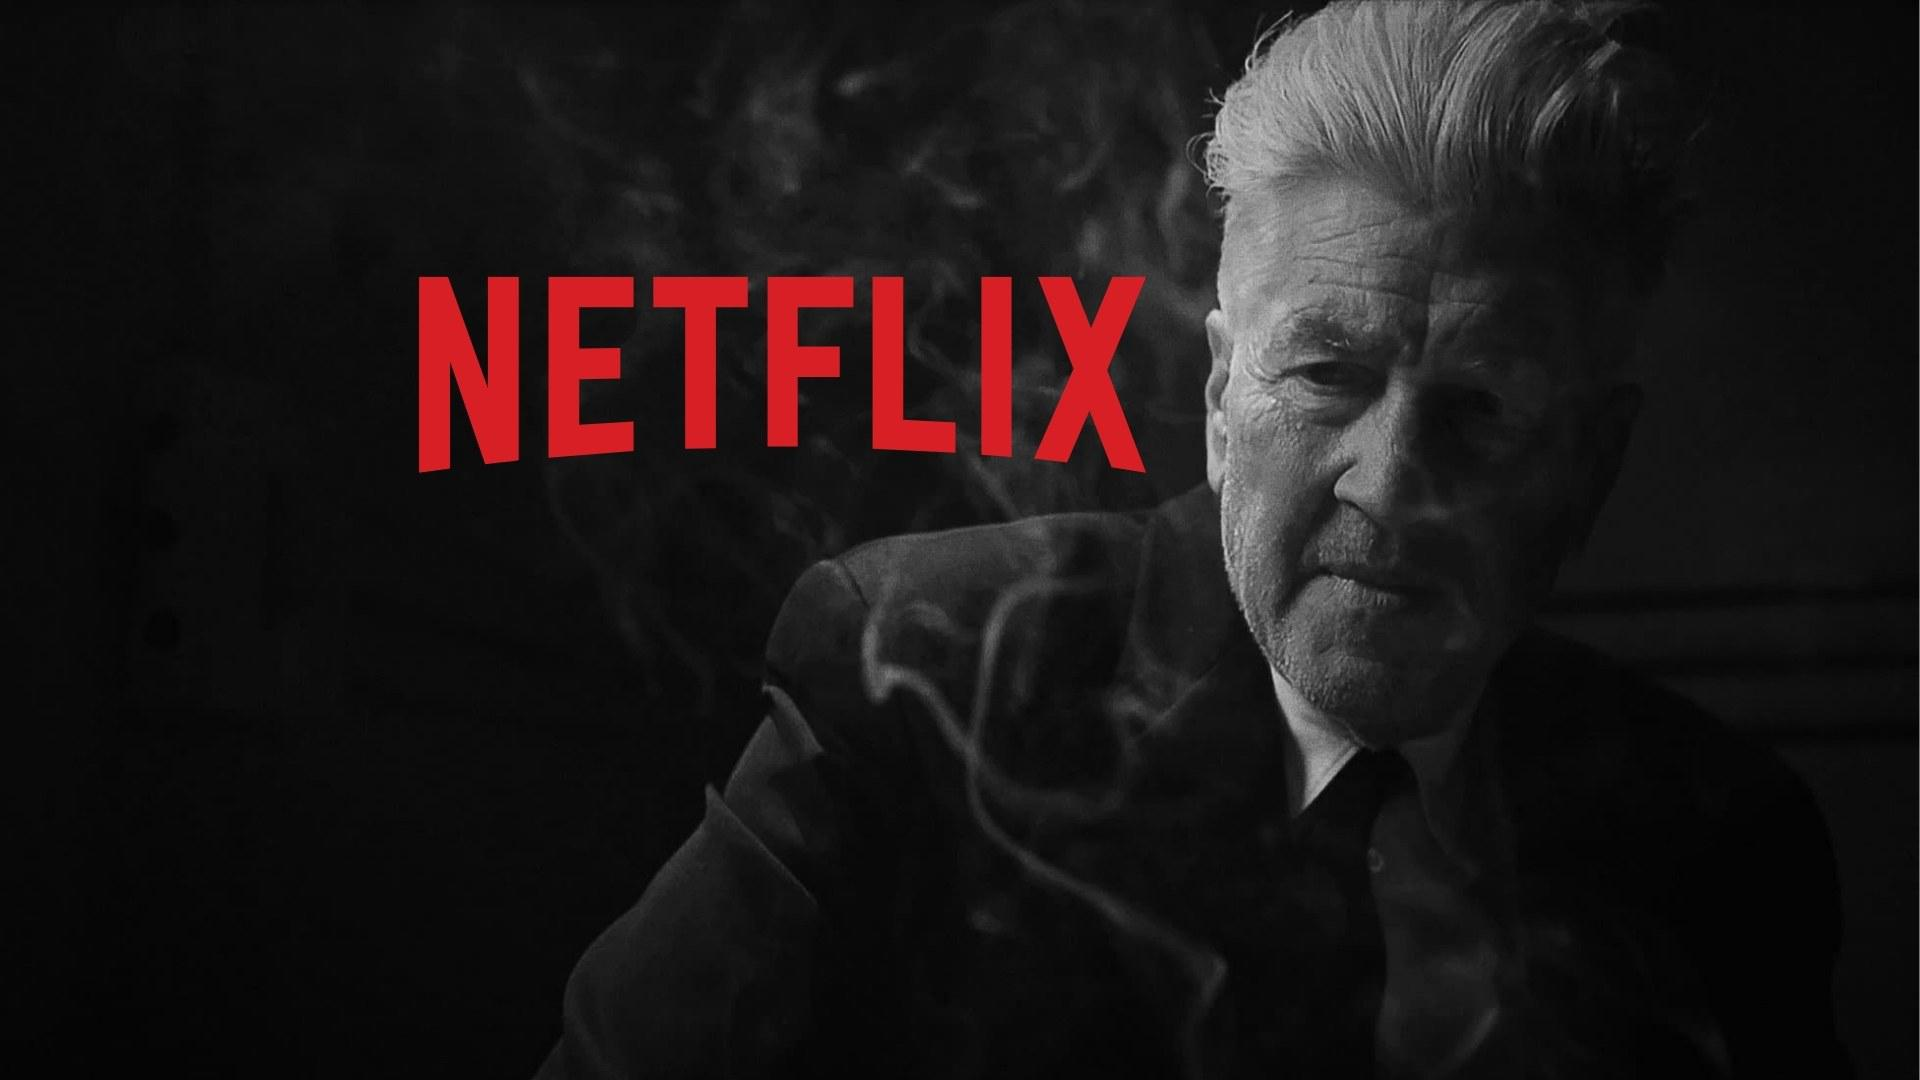 David Lynch David Lynch | NETFLIX | news David Lynch, NETFLIX, news, WISTERIA